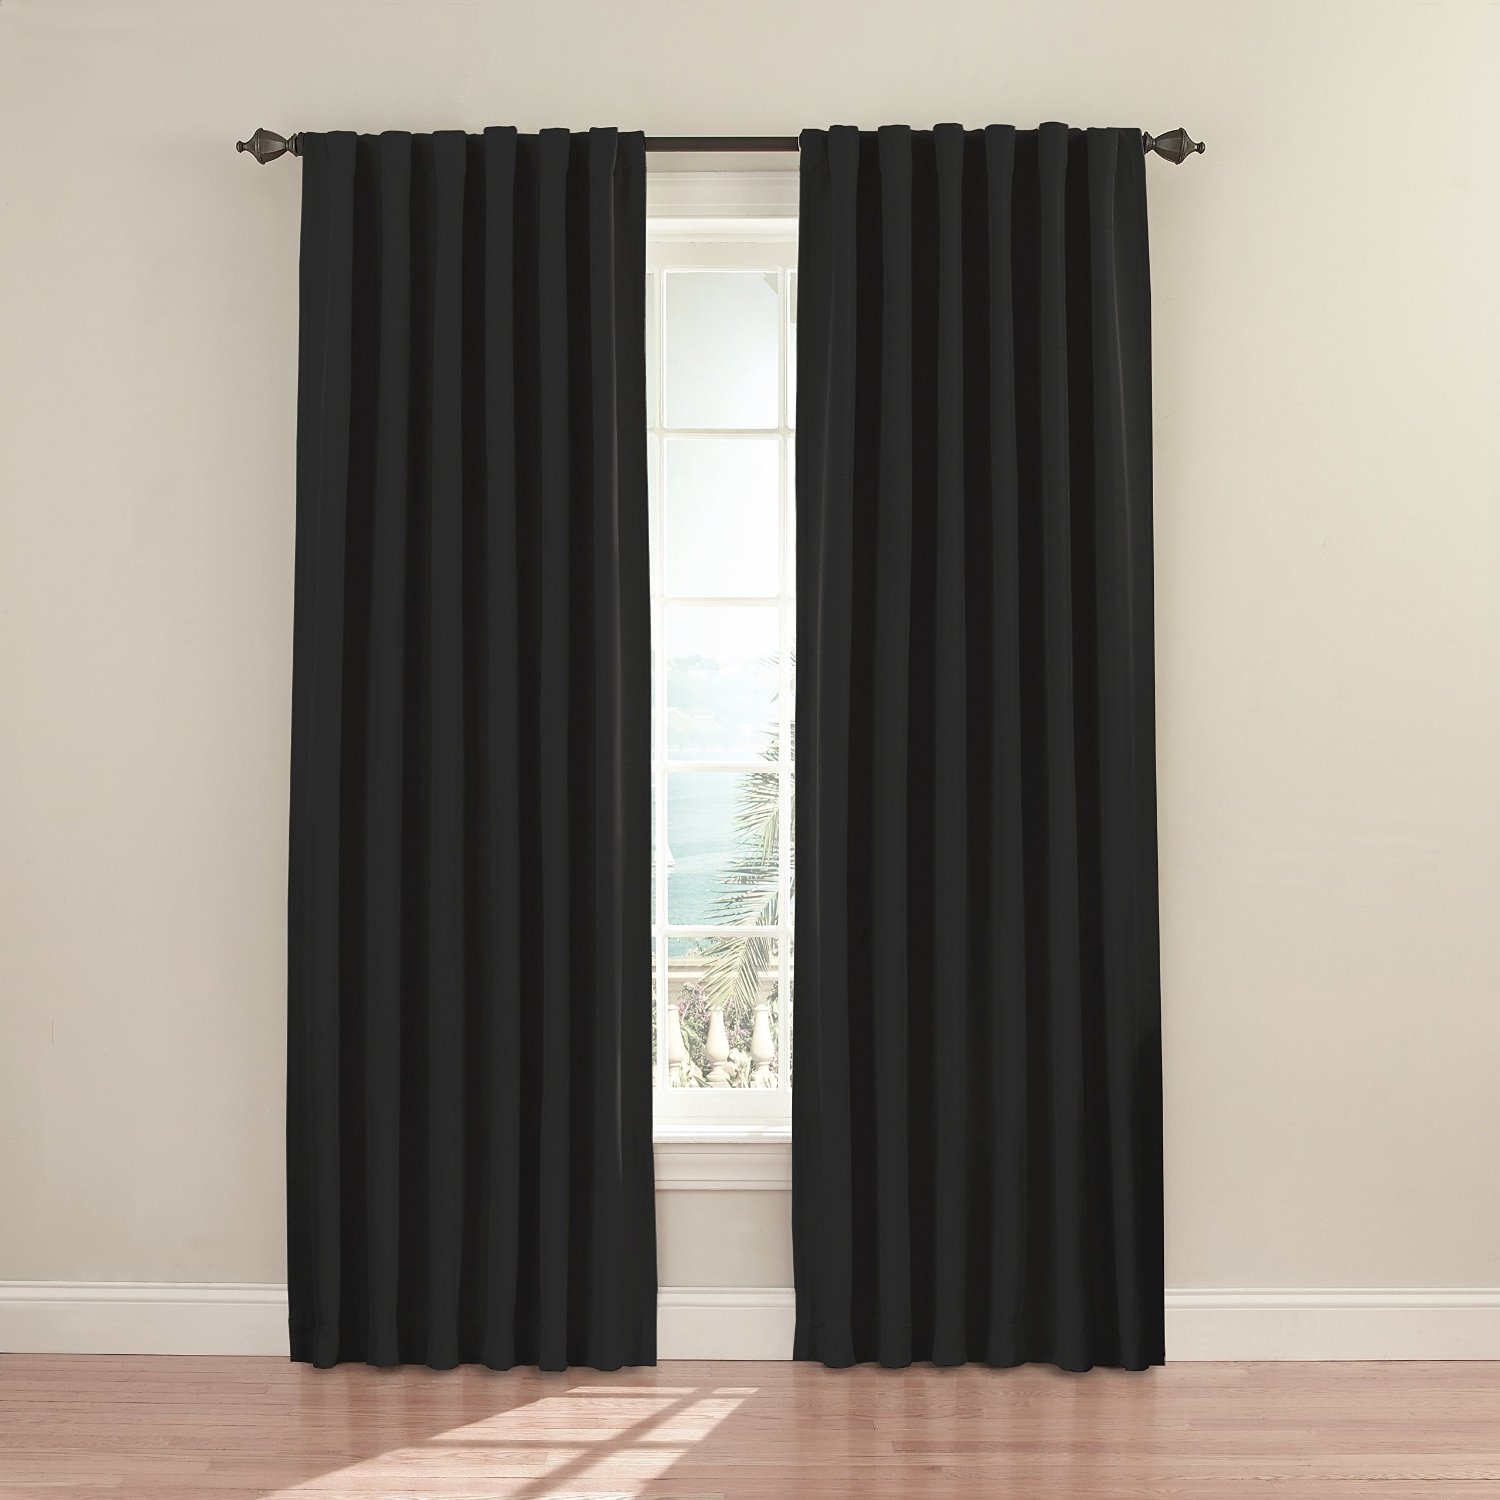 Top 8 Best Blackout Curtains 2017 Best Home Blackout Curtains Pertaining To Noise And Light Blocking Curtains (Image 14 of 15)